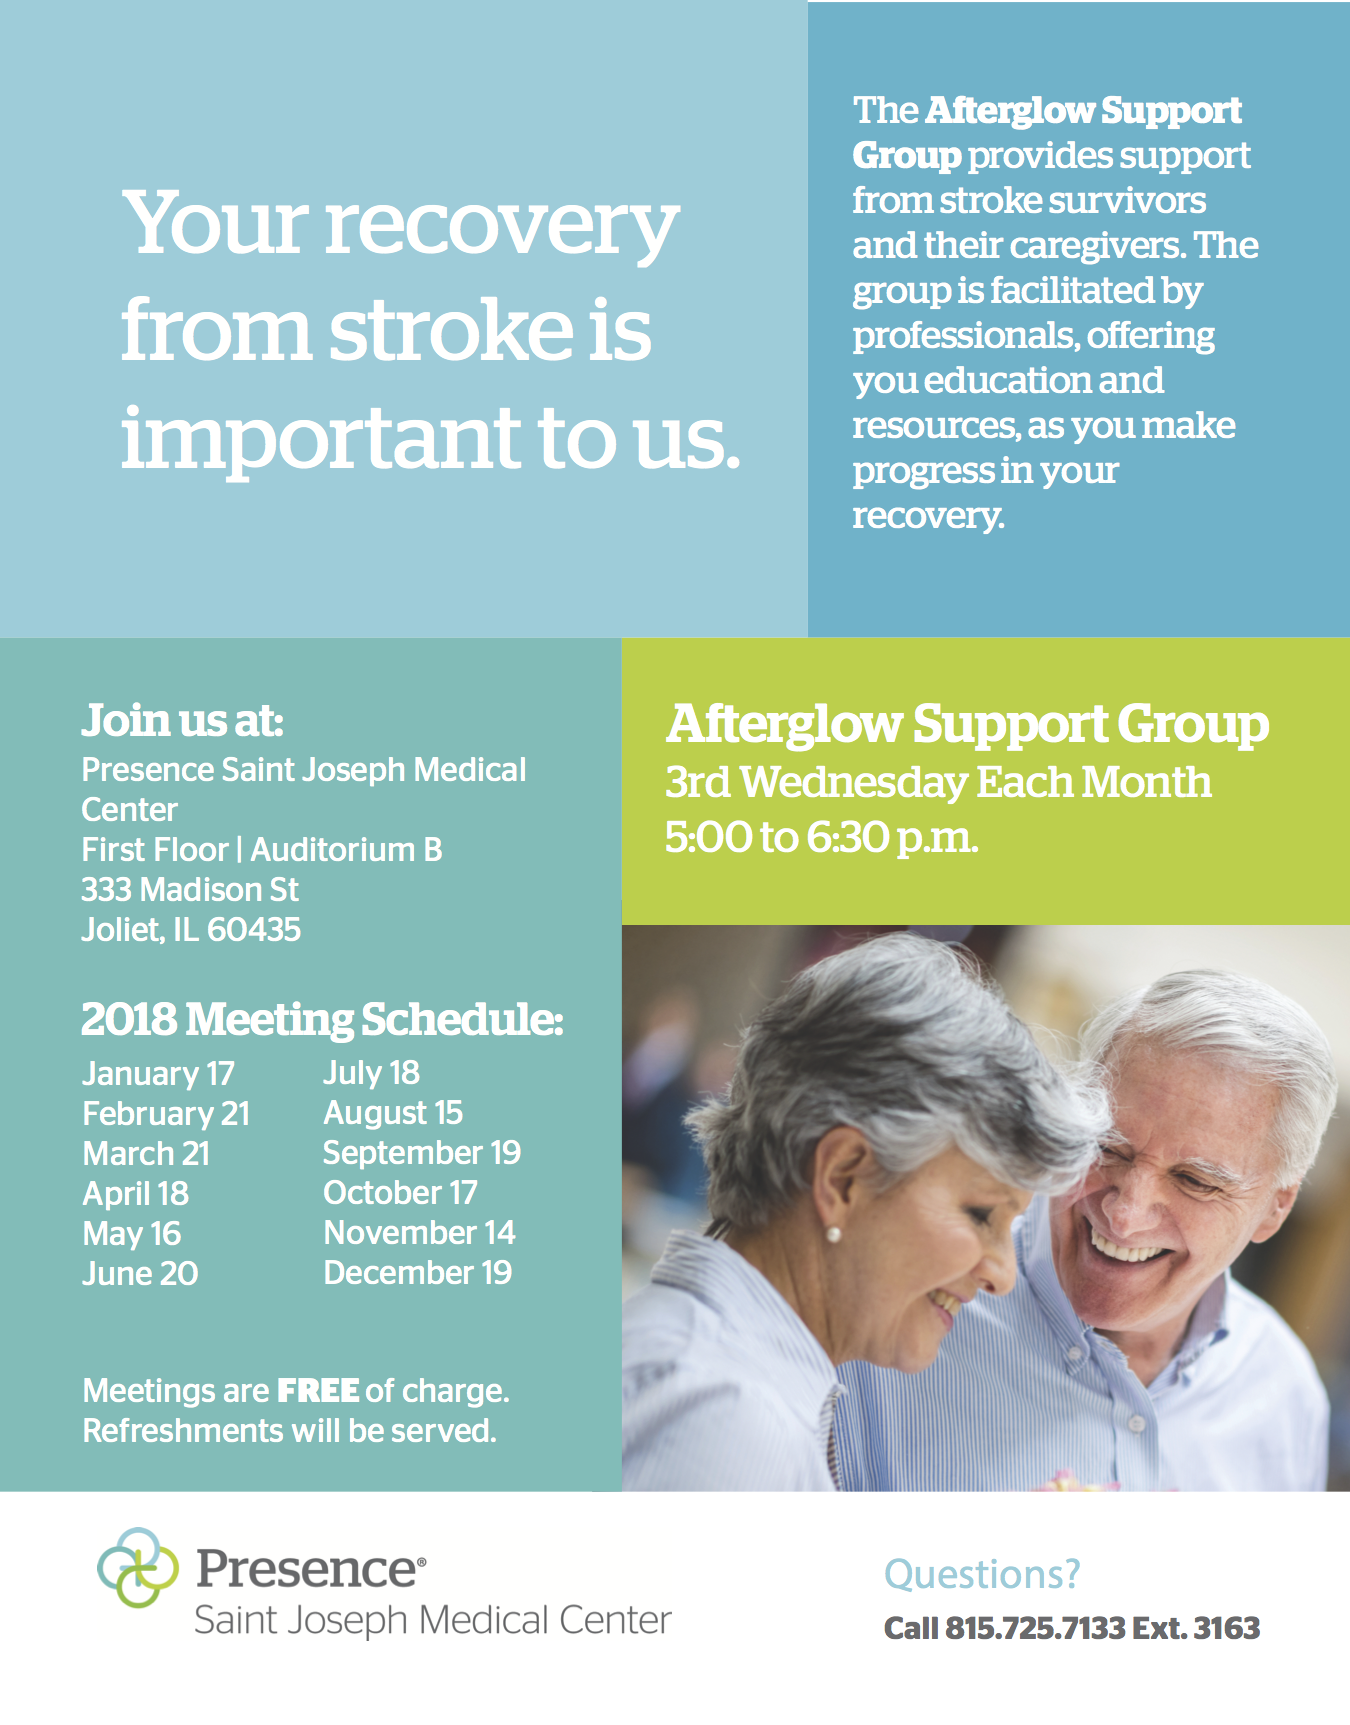 http://www.joeniekrofoundation.com/patient-caregiver-support/support-groups/locations/attachment/afterglow-2018-schedule7/